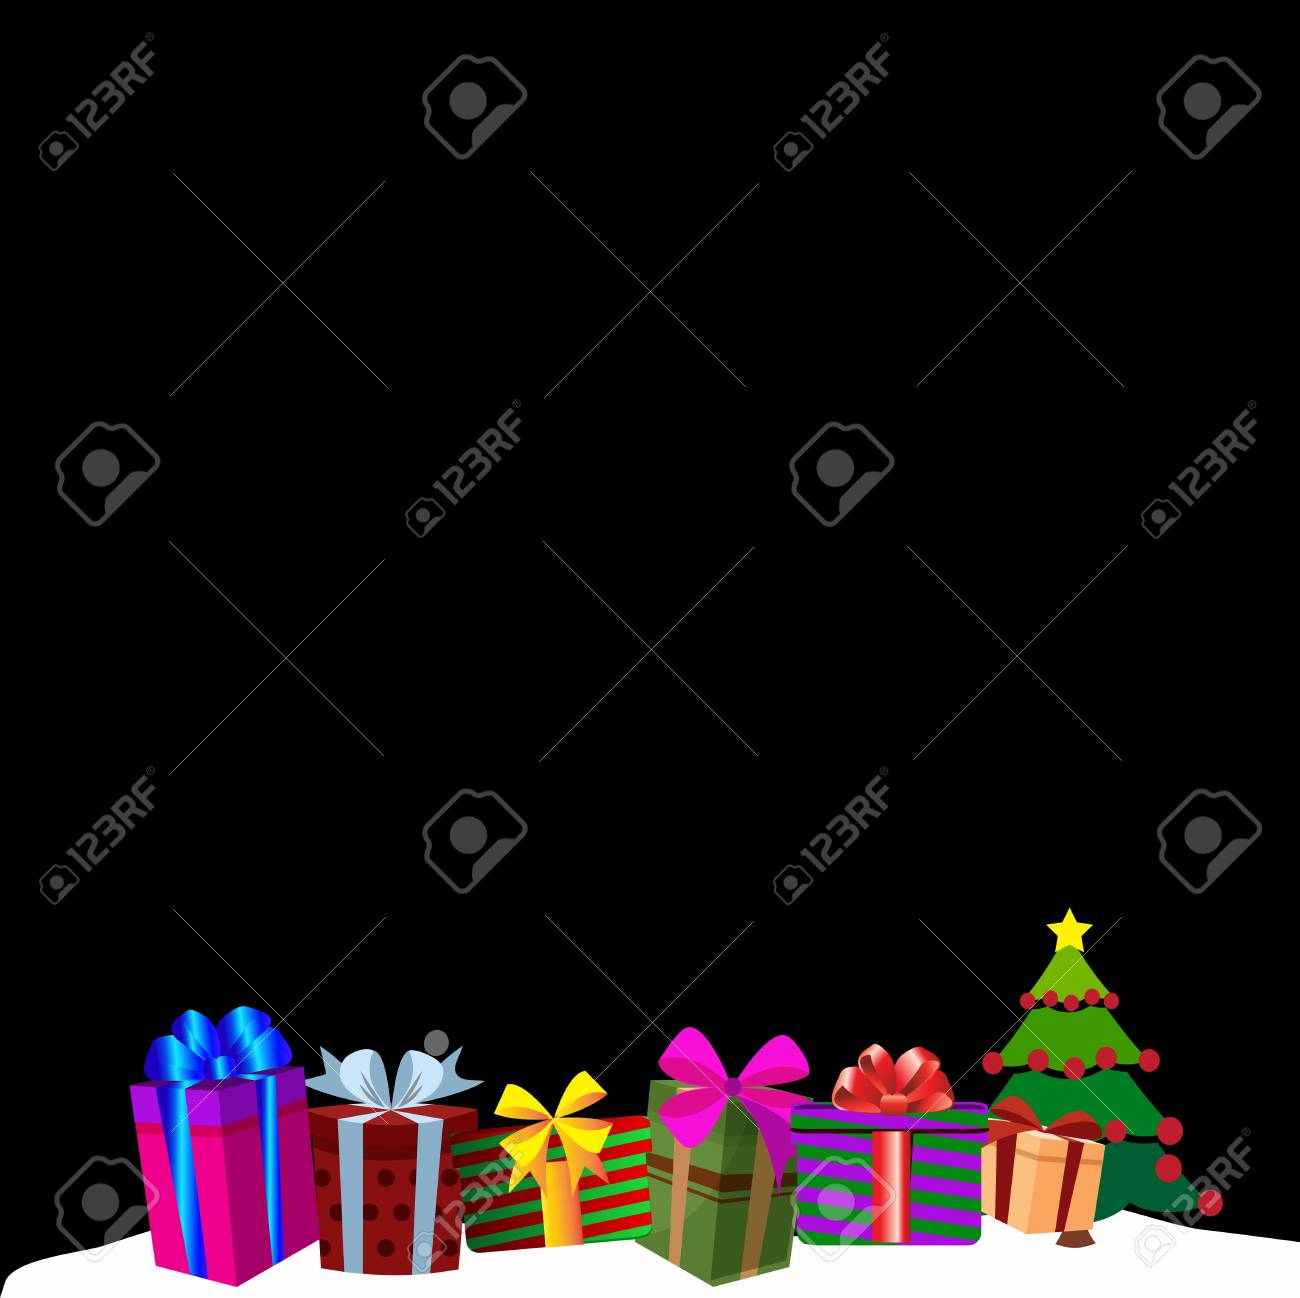 greeting template clip art colourful gift boxes on white snow drift christmas or new year border frame background